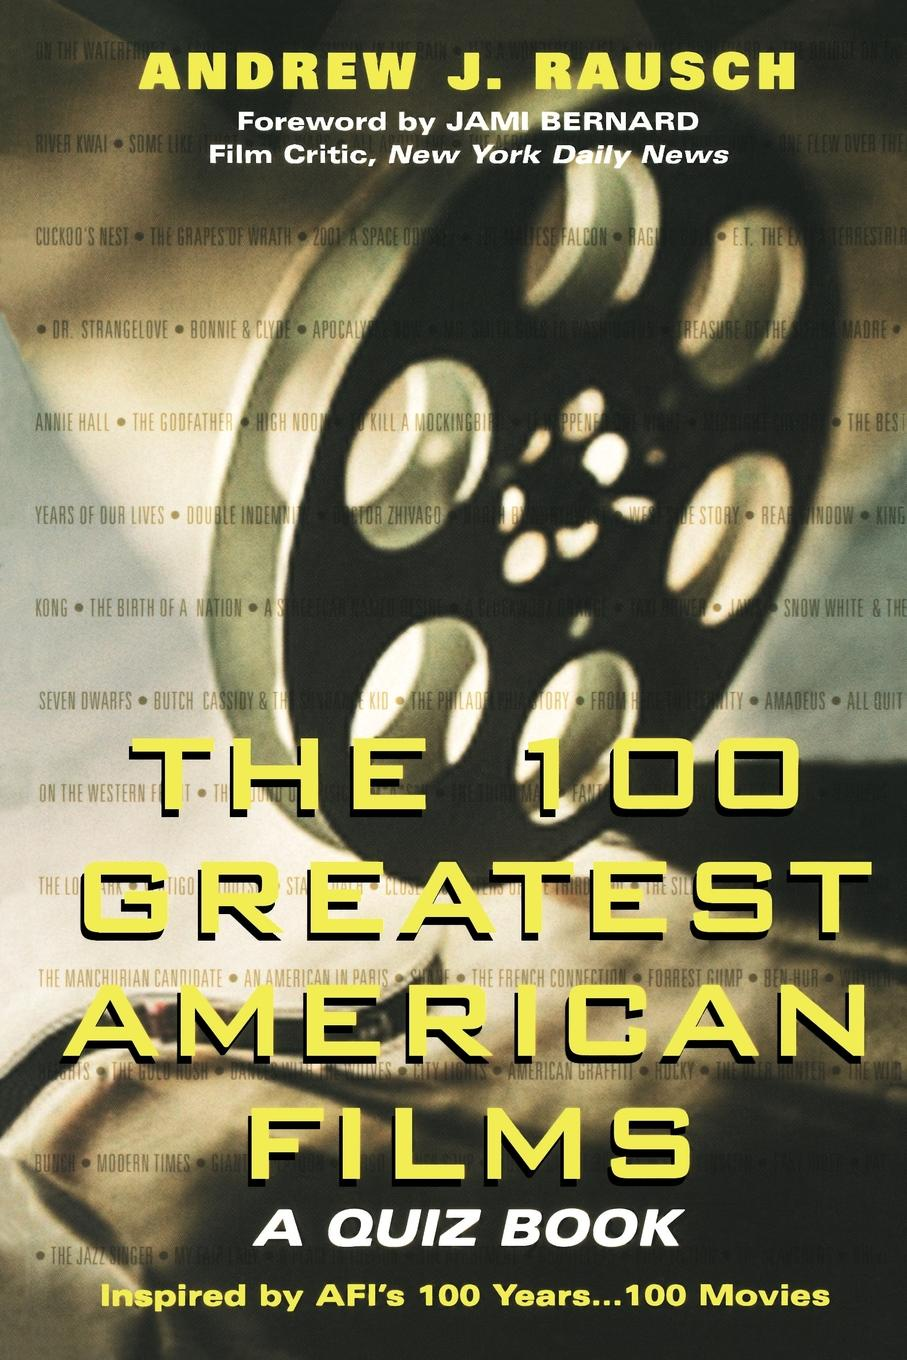 Andrew J. Rausch 100 Greatest American Films. A Quiz Book